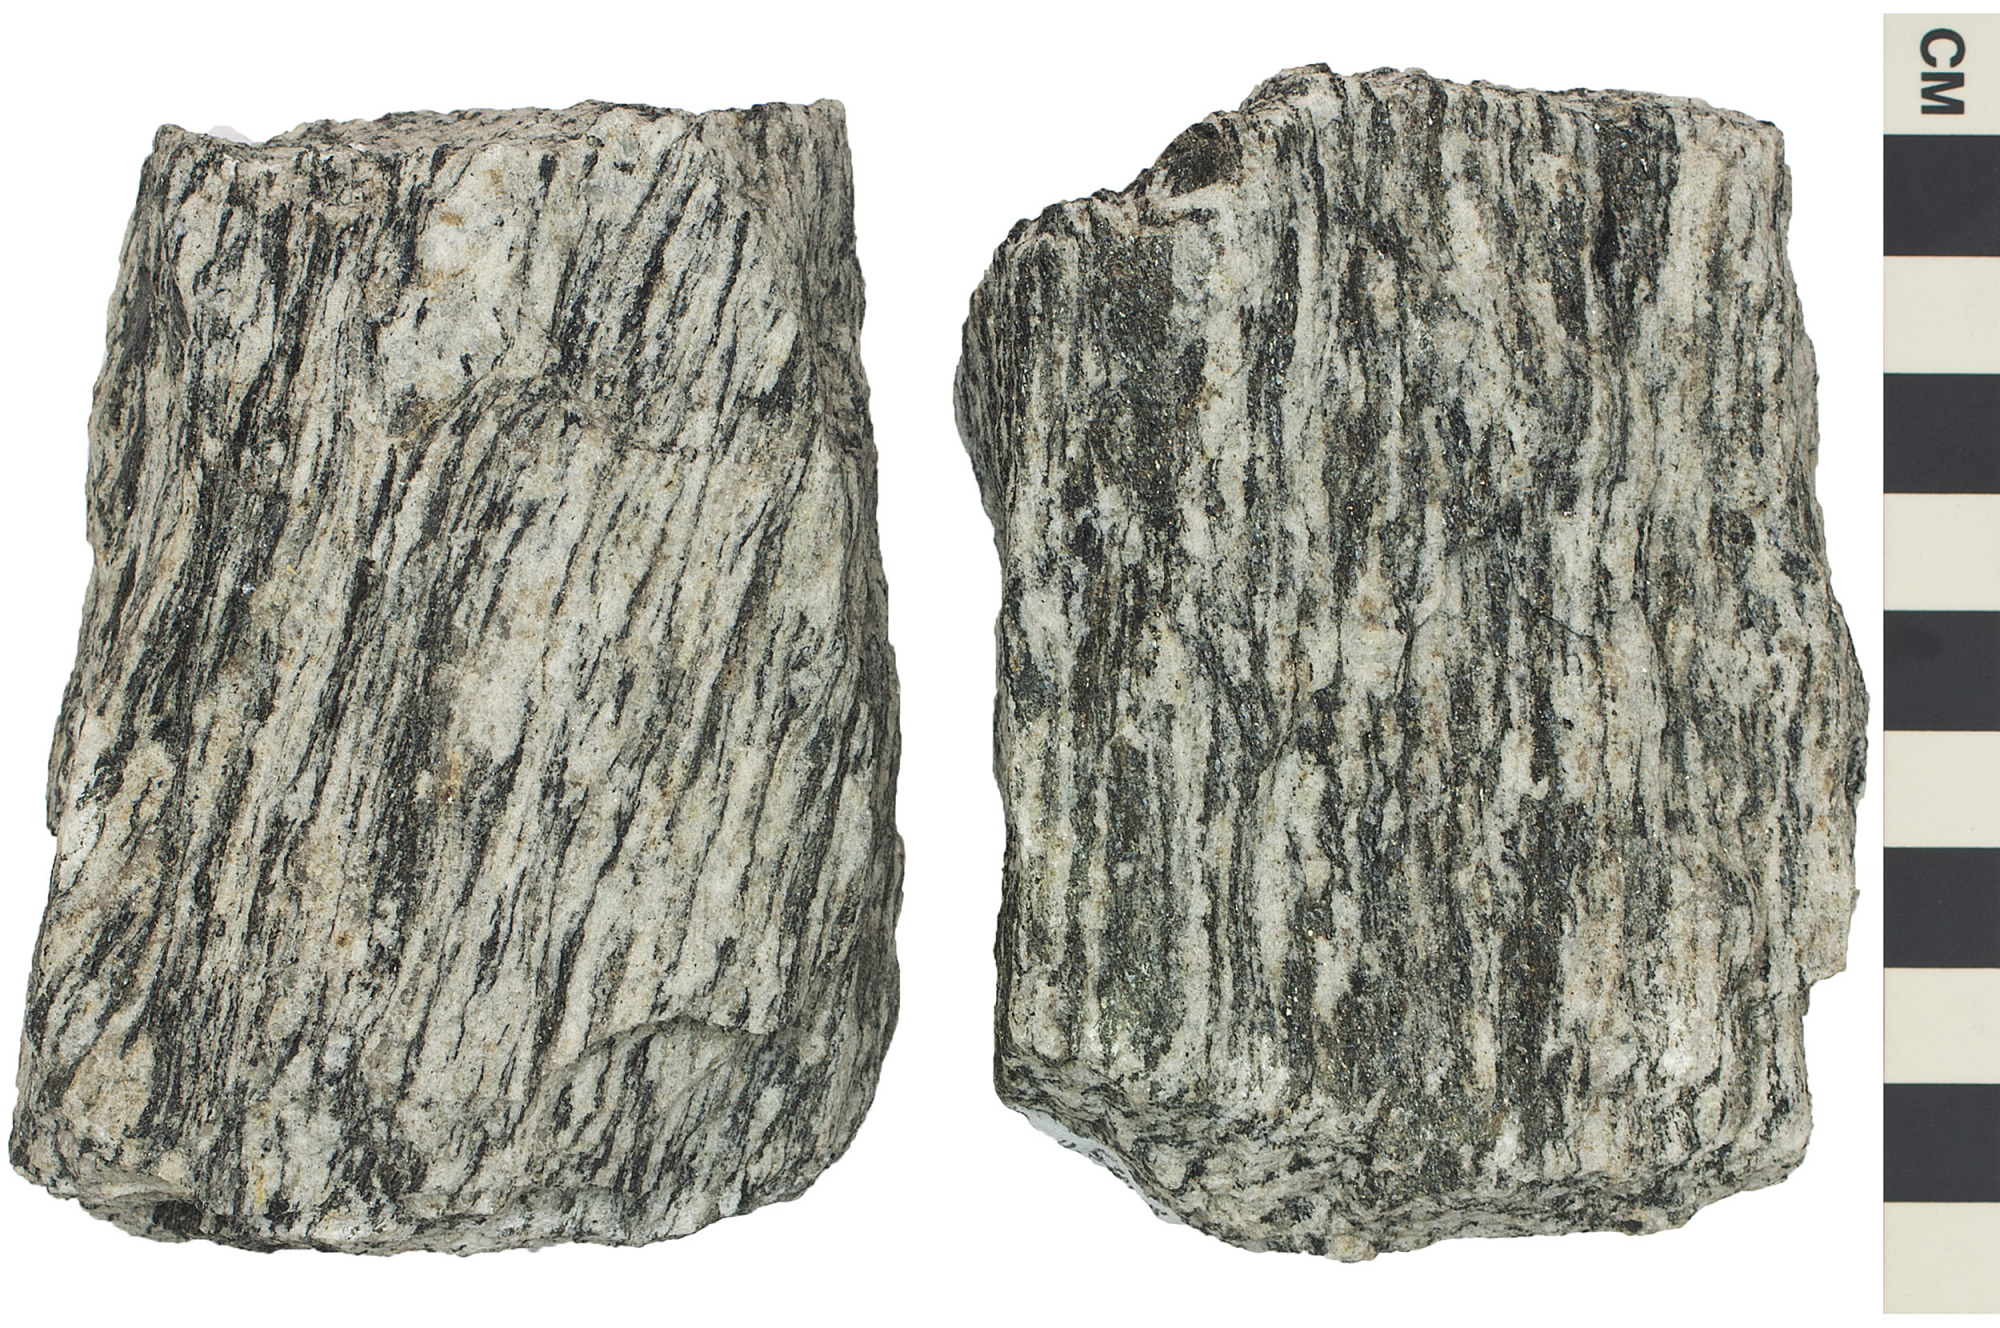 granite and gneiss relationship advice